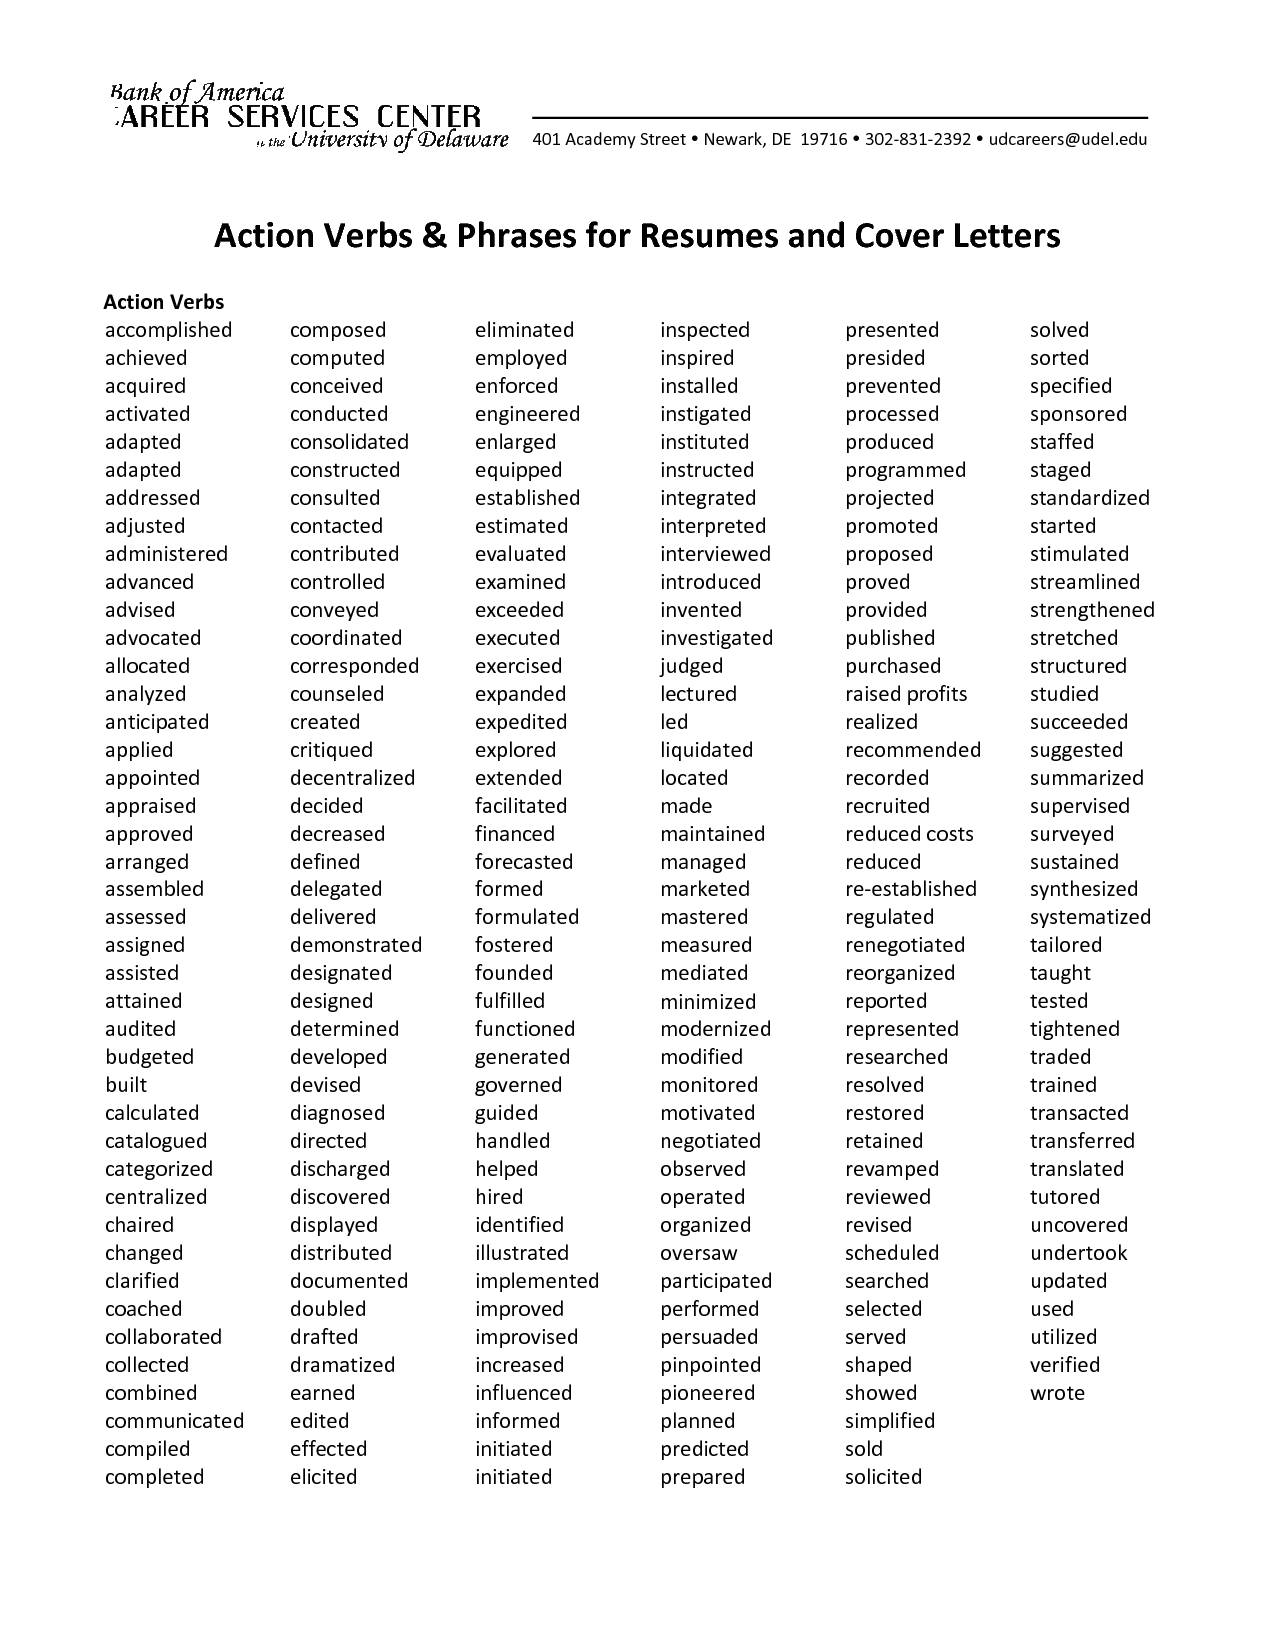 action verbs phrases for resumes and cover letters education action verbs phrases for resumes and cover letters